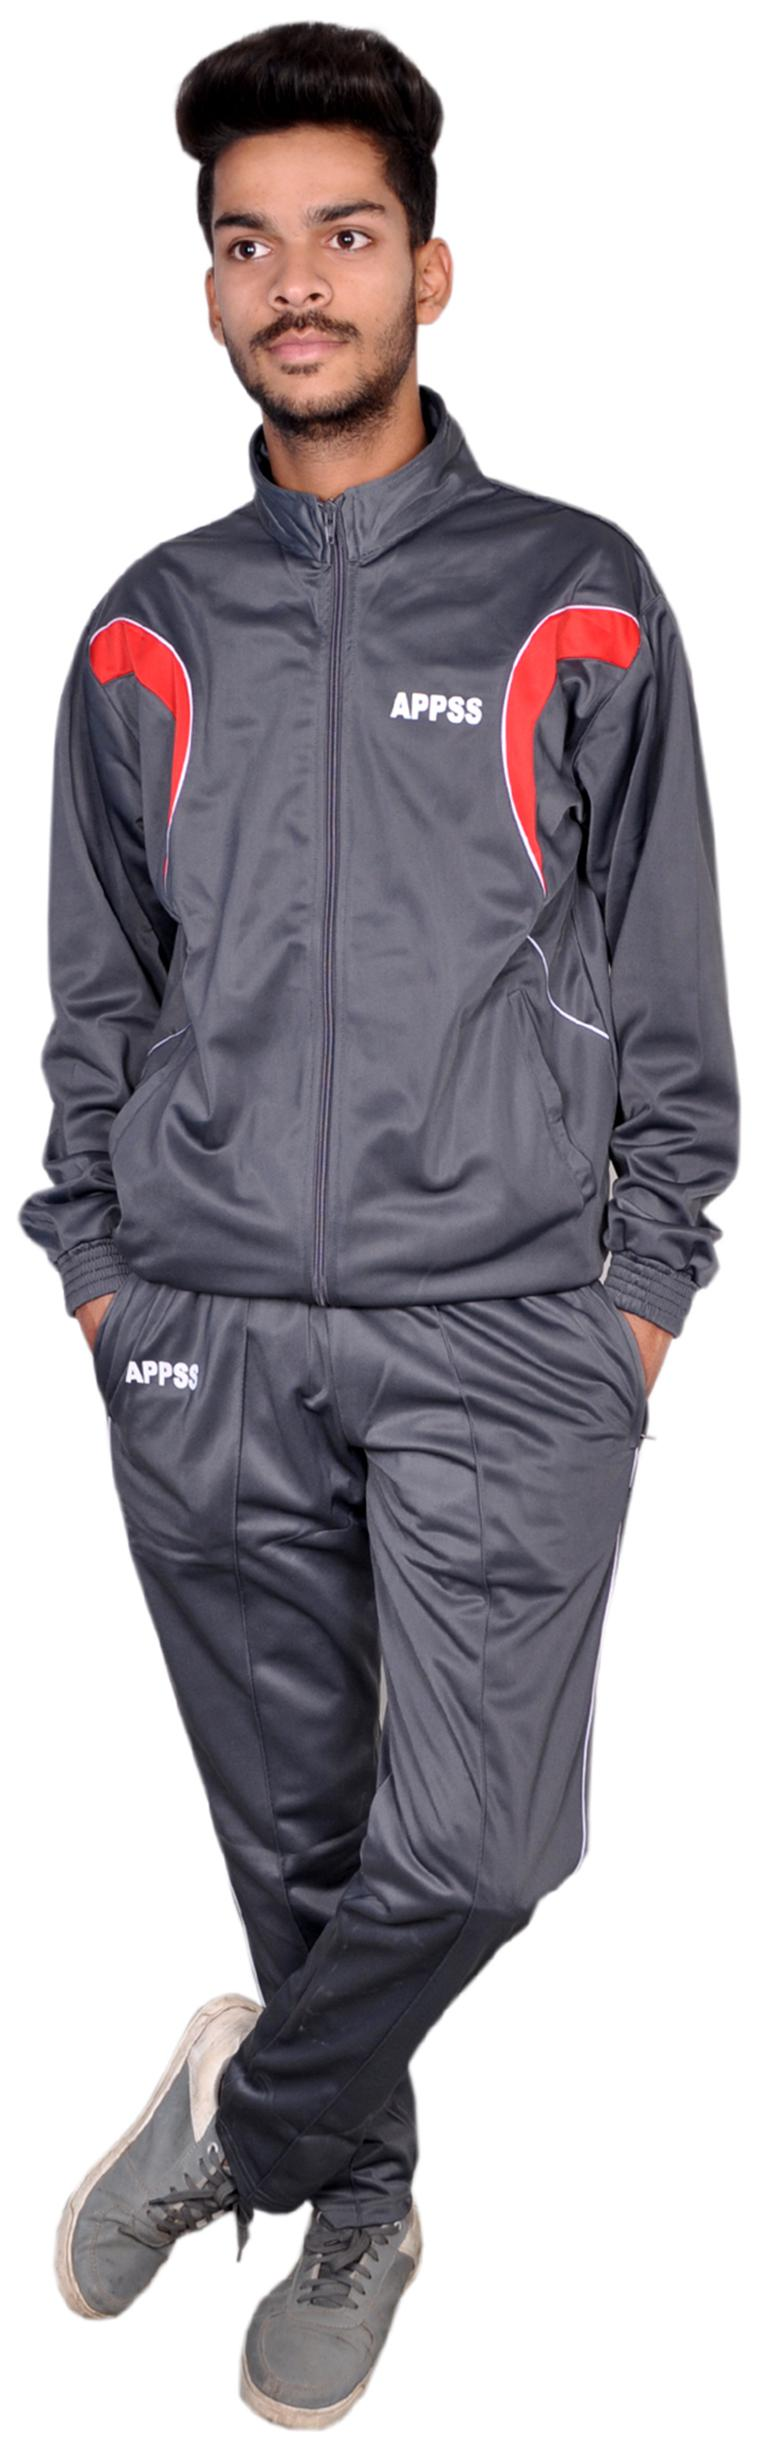 APPSS SPORTS Tracksuit for Men;Regular Super Poly Tracksuit Regular fit Stylish Casual...